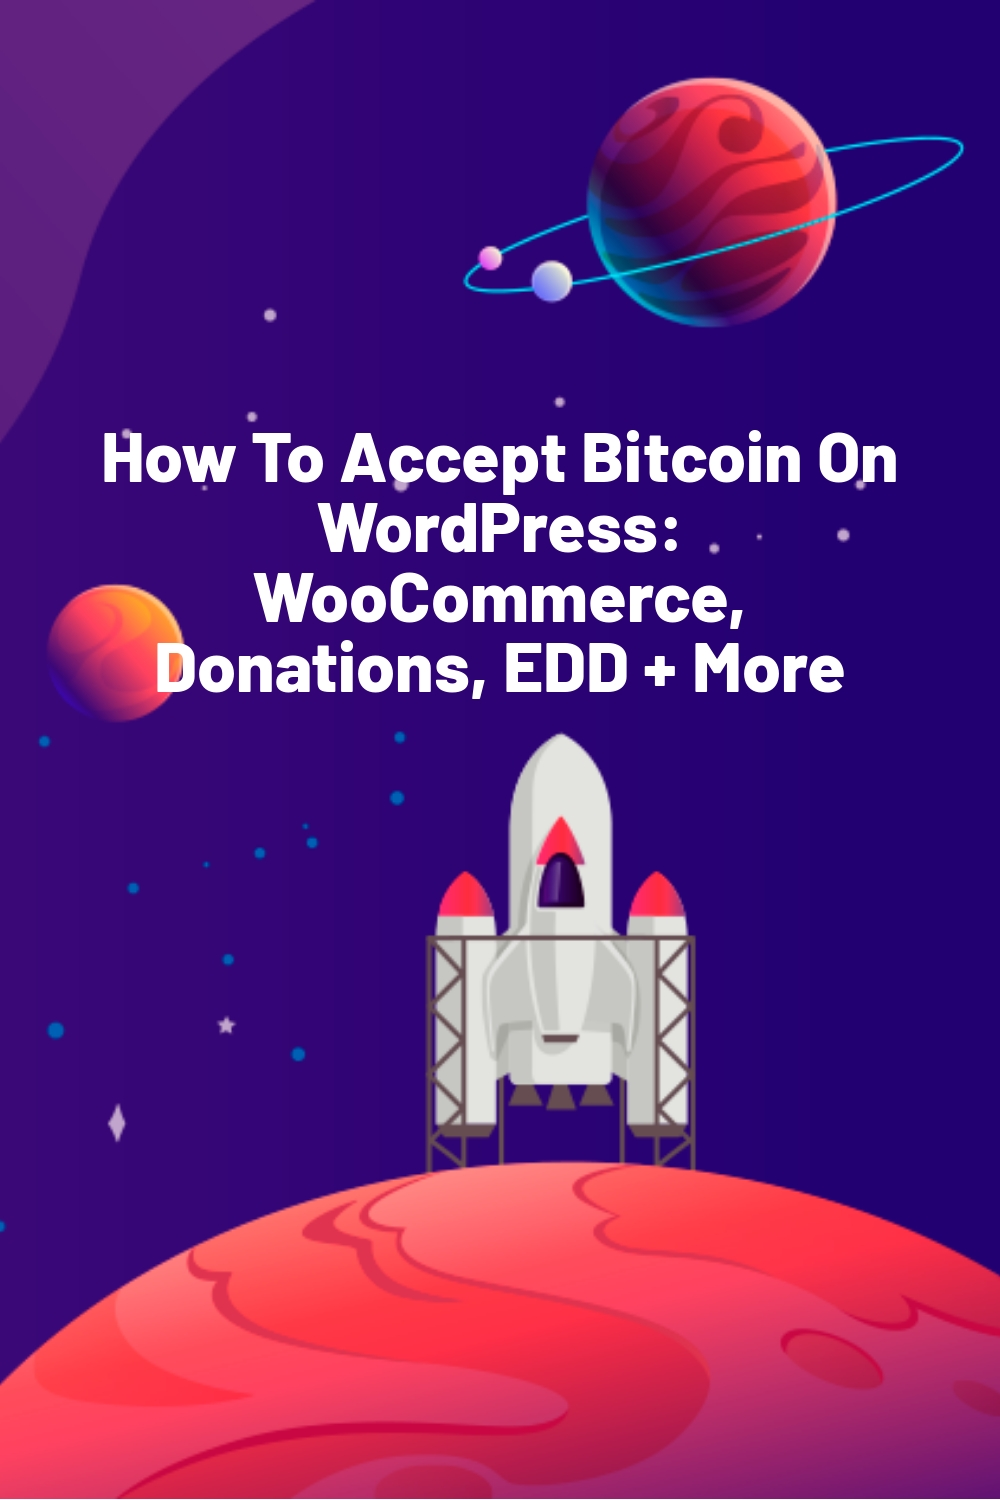 How To Accept Bitcoin On WordPress: WooCommerce, Donations, EDD + More